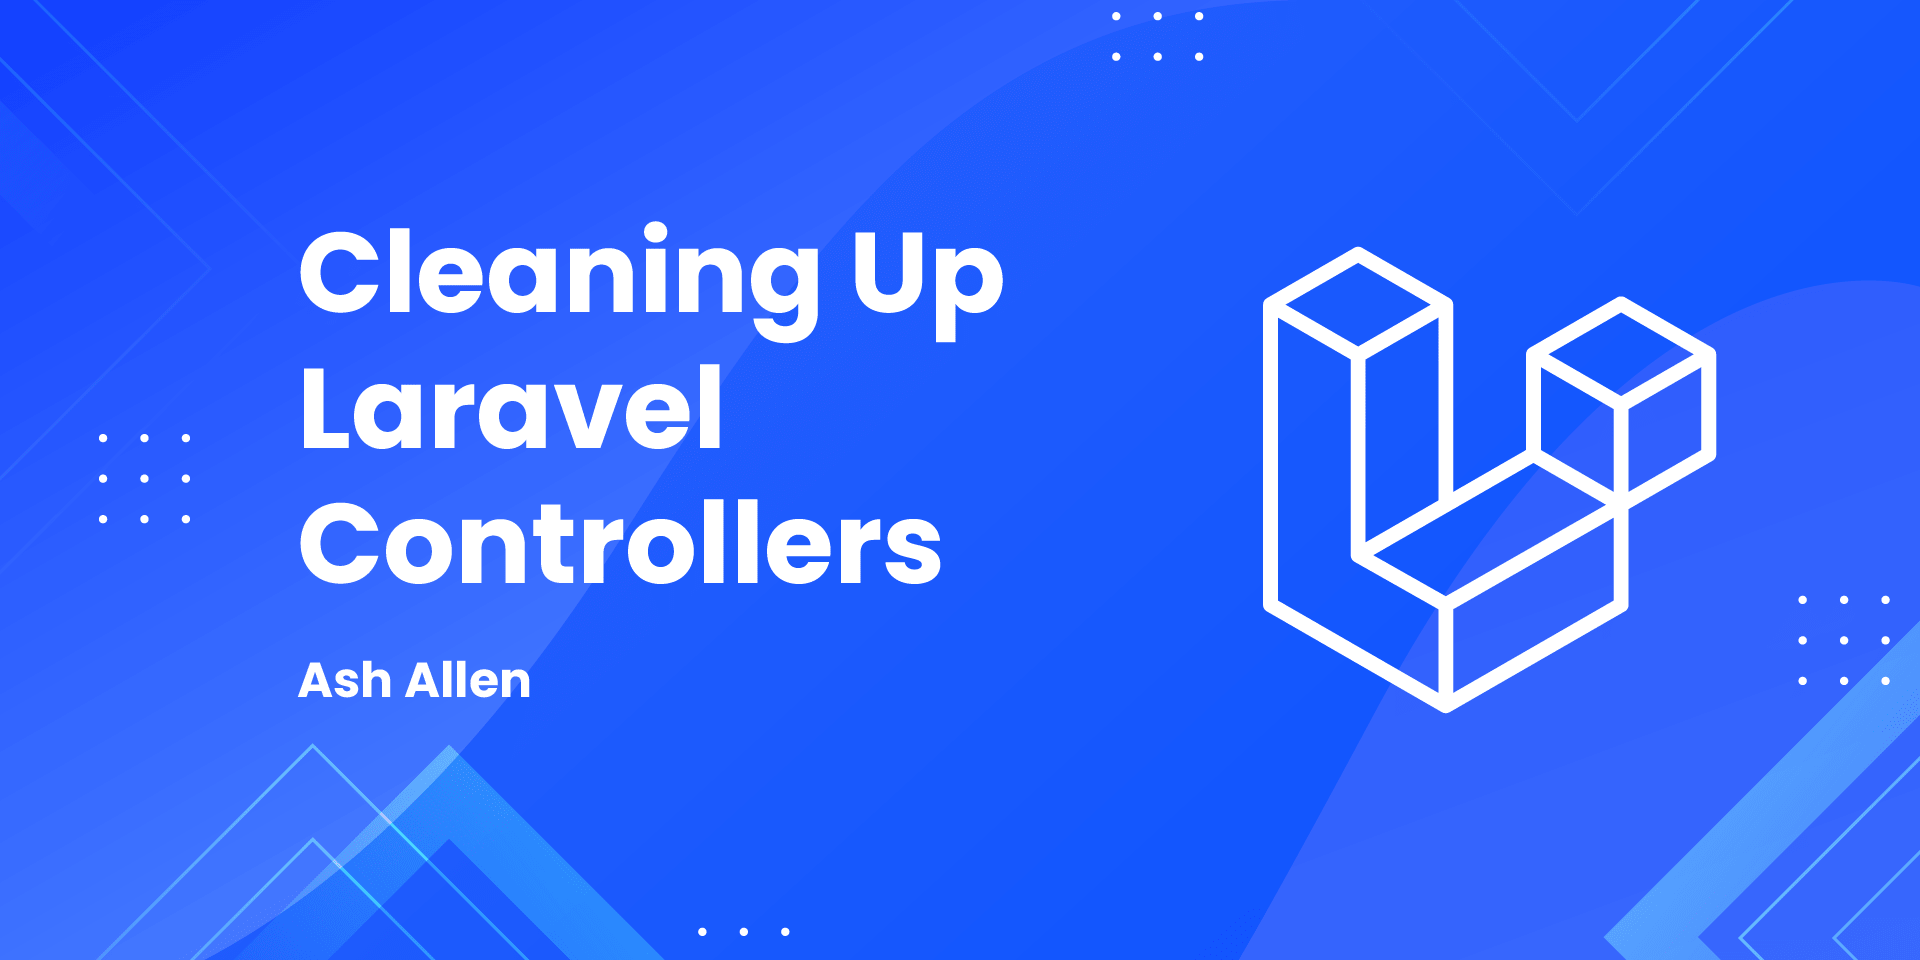 Learn how to clean up controllers in Laravel by using form requests, actions, and services. The article also includes real-life examples of how you can use these techniques.